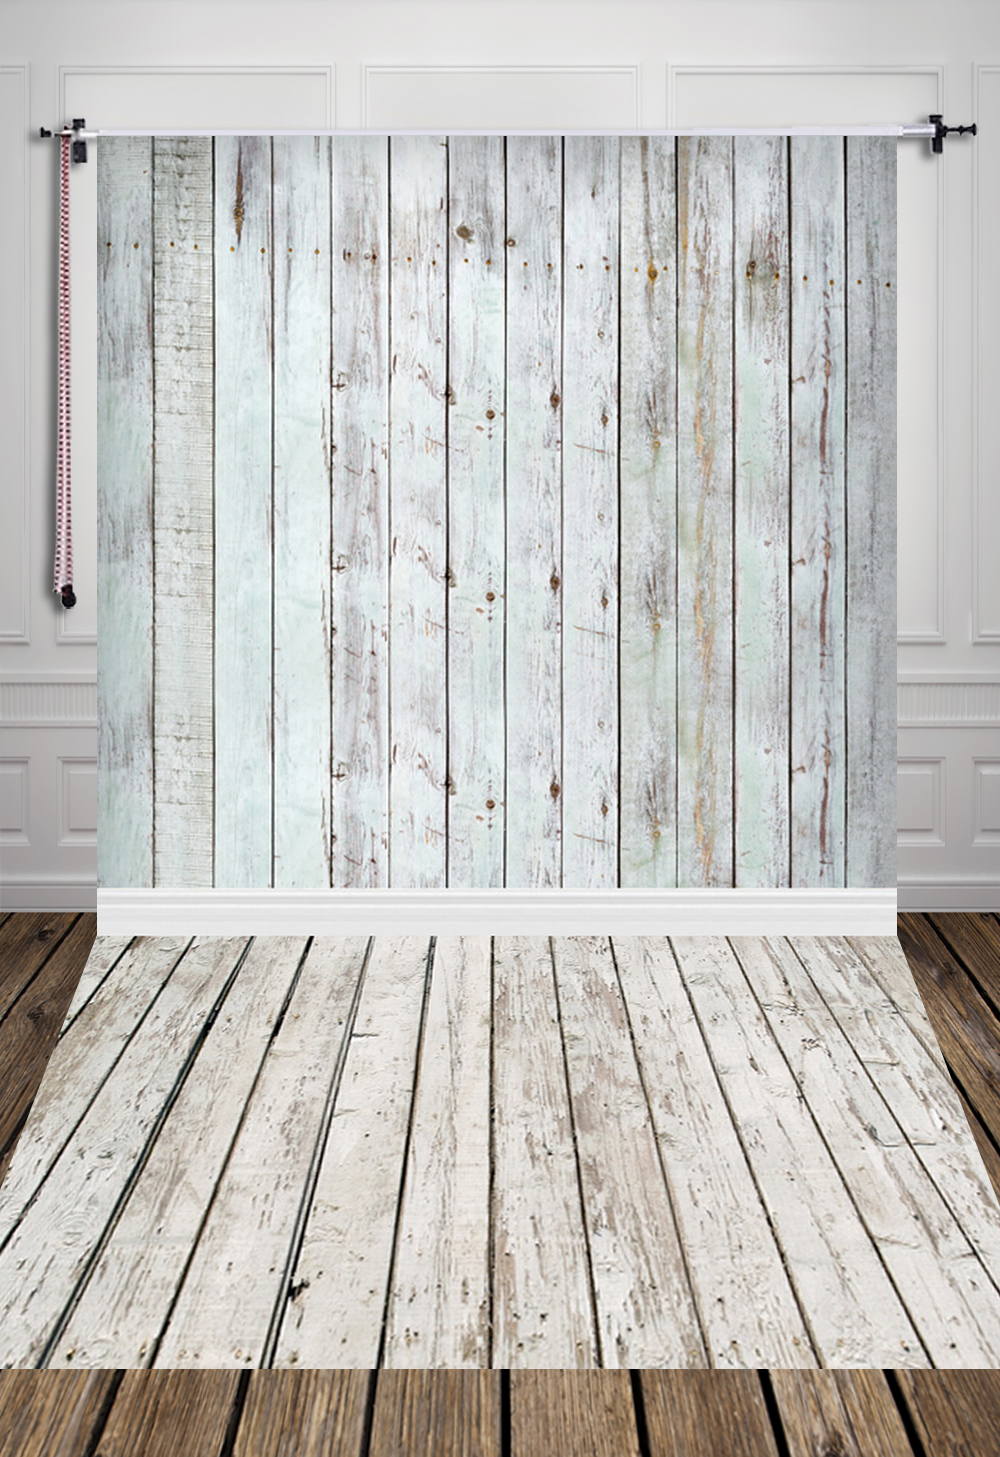 5X7ft1.5x2.2m) HOT sale light green wood floor print digital photography  backdrops - Popular Wooden Floor Sale-Buy Cheap Wooden Floor Sale Lots From